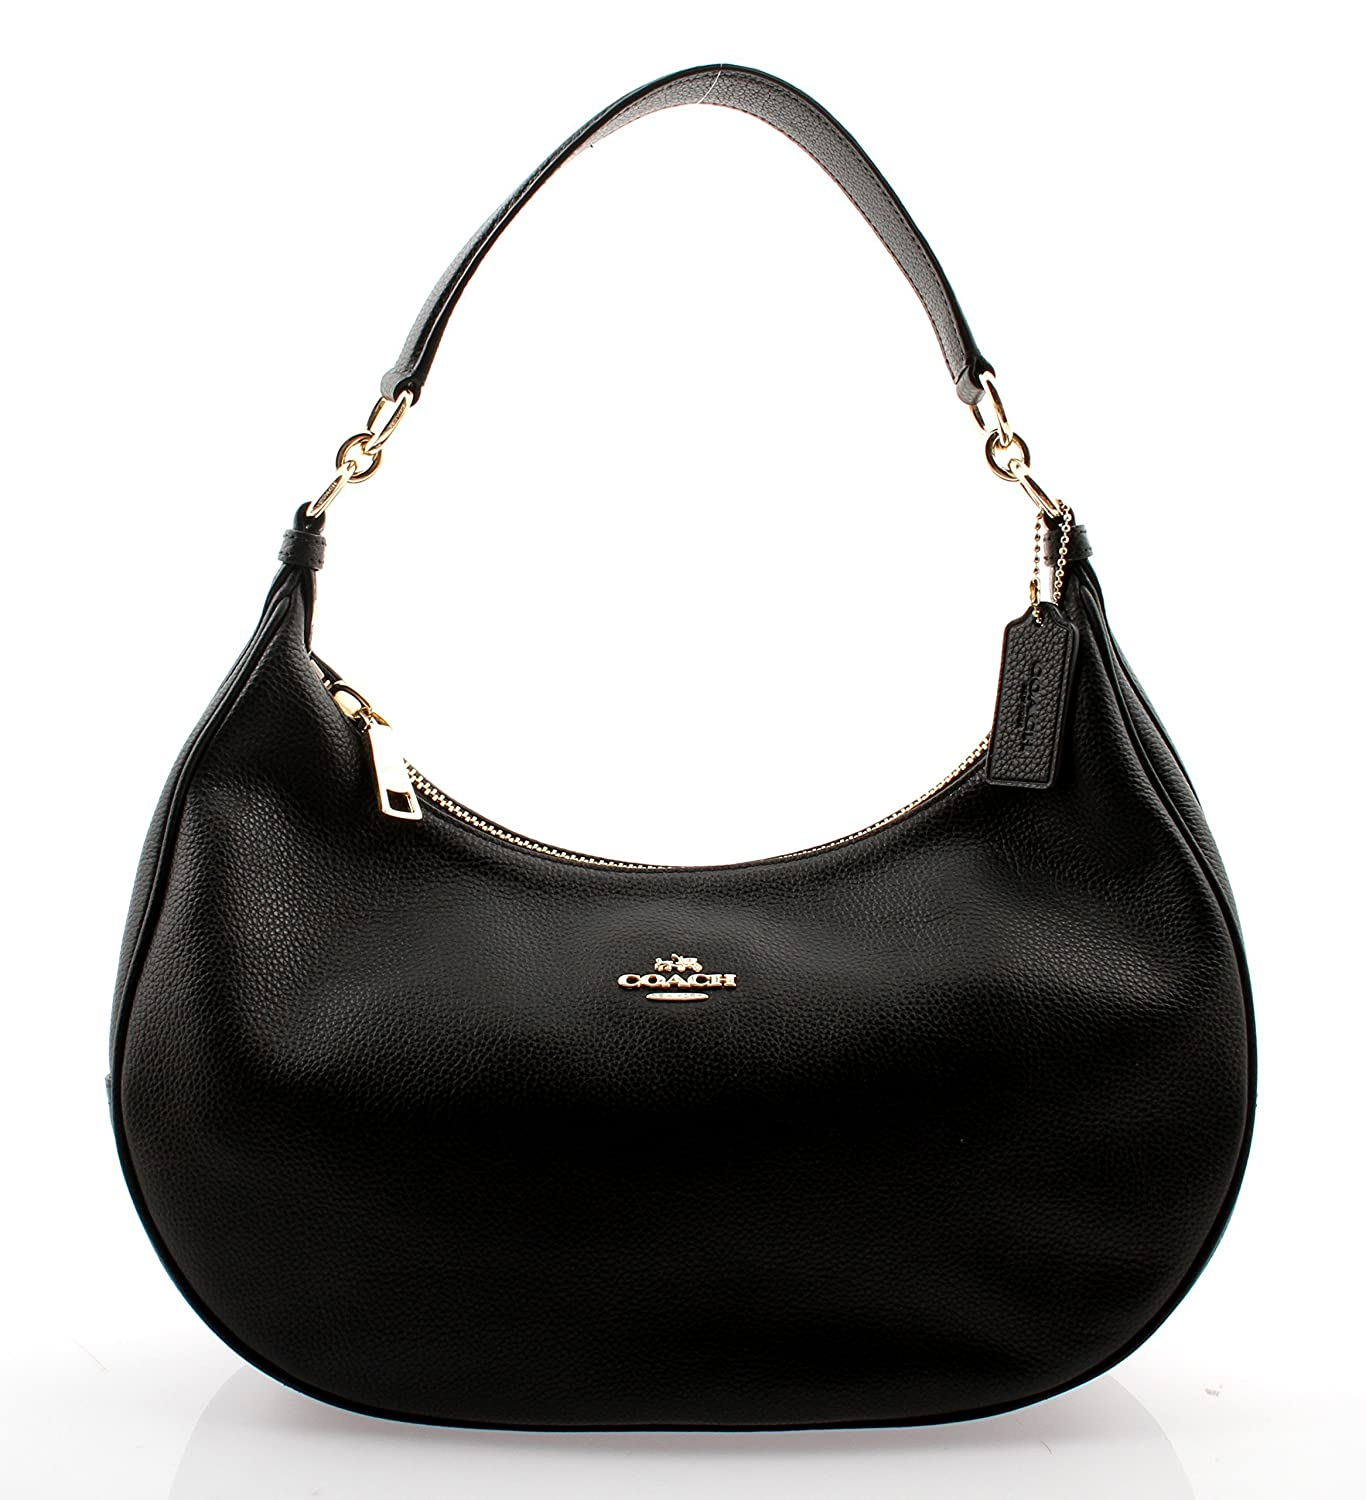 Amazon.com  Coach Pebble Leather Harley East West Hobo in Black ... acbfb64ffe87f